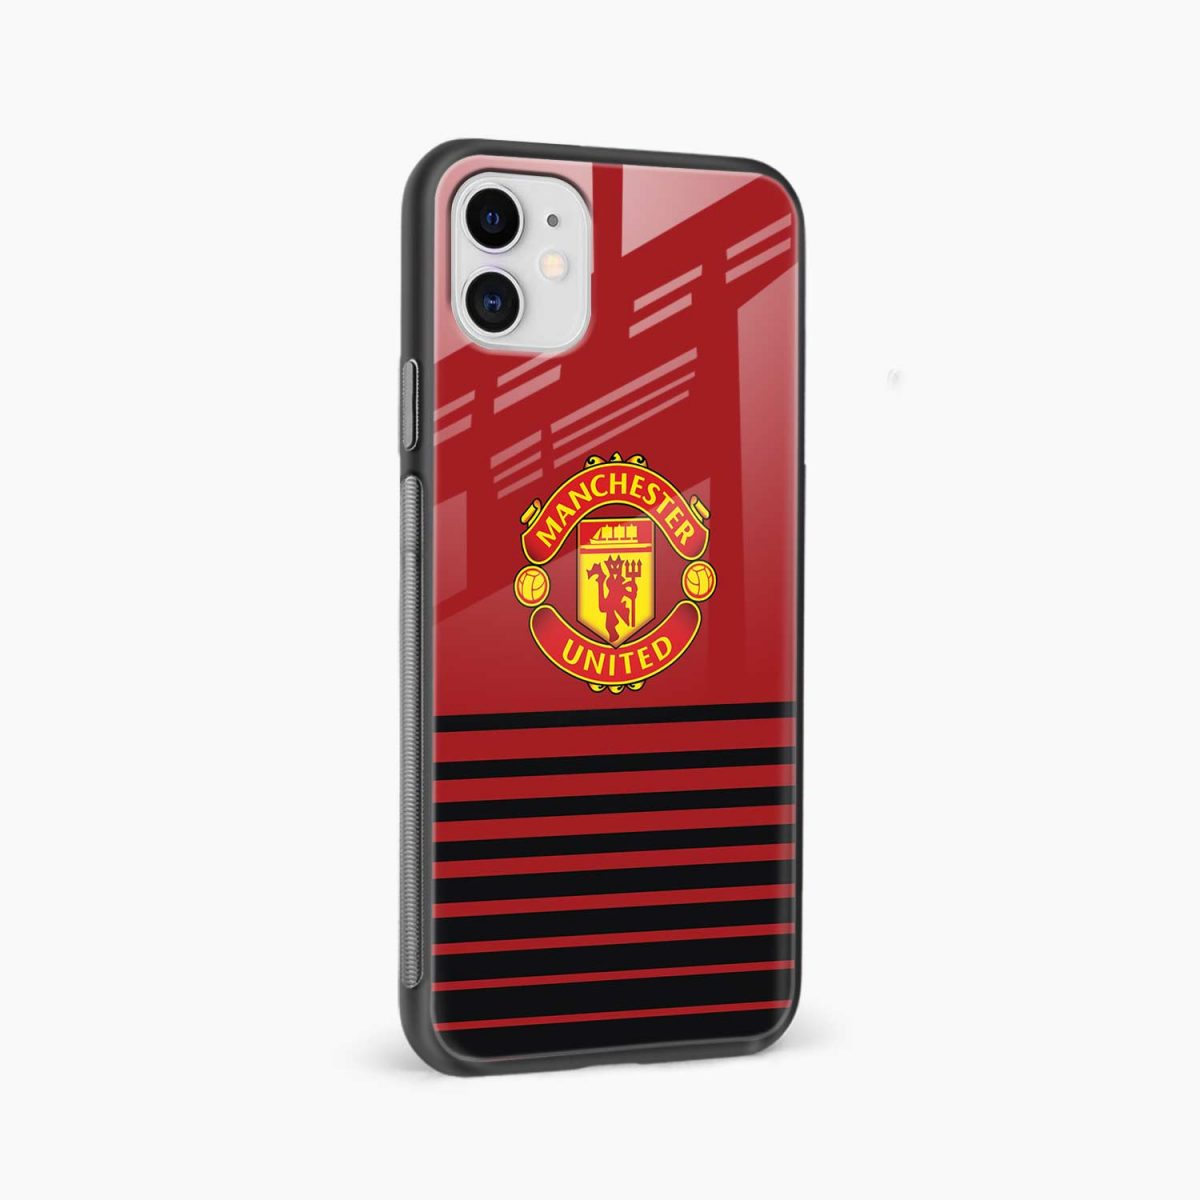 manchester united iphone back cover side view